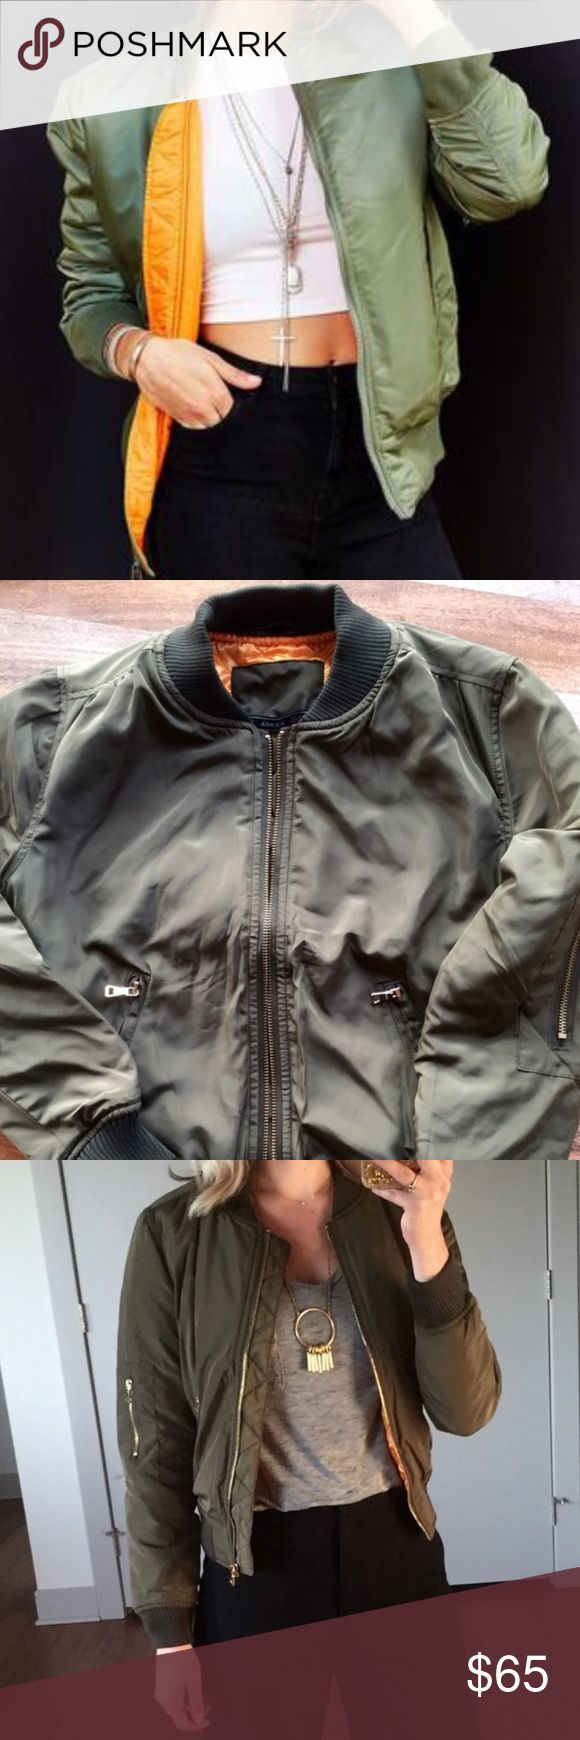 - MA1 STYLE - Army Green Bomber Jacket Army green Bomber with 2 side zipper pockets, inside pocket and arm zipper pocket. Orange satin lining. Perfect jacket to keep you warm & on trend all winter long! True to size. 🎄Perfect Holiday Gift! Pair with other items in my closet for 20% off!  🙅🏼No trades / selling off of Posh.  ✨Offers always welcome!✨ Claire Louise Boutique Jackets & Coats